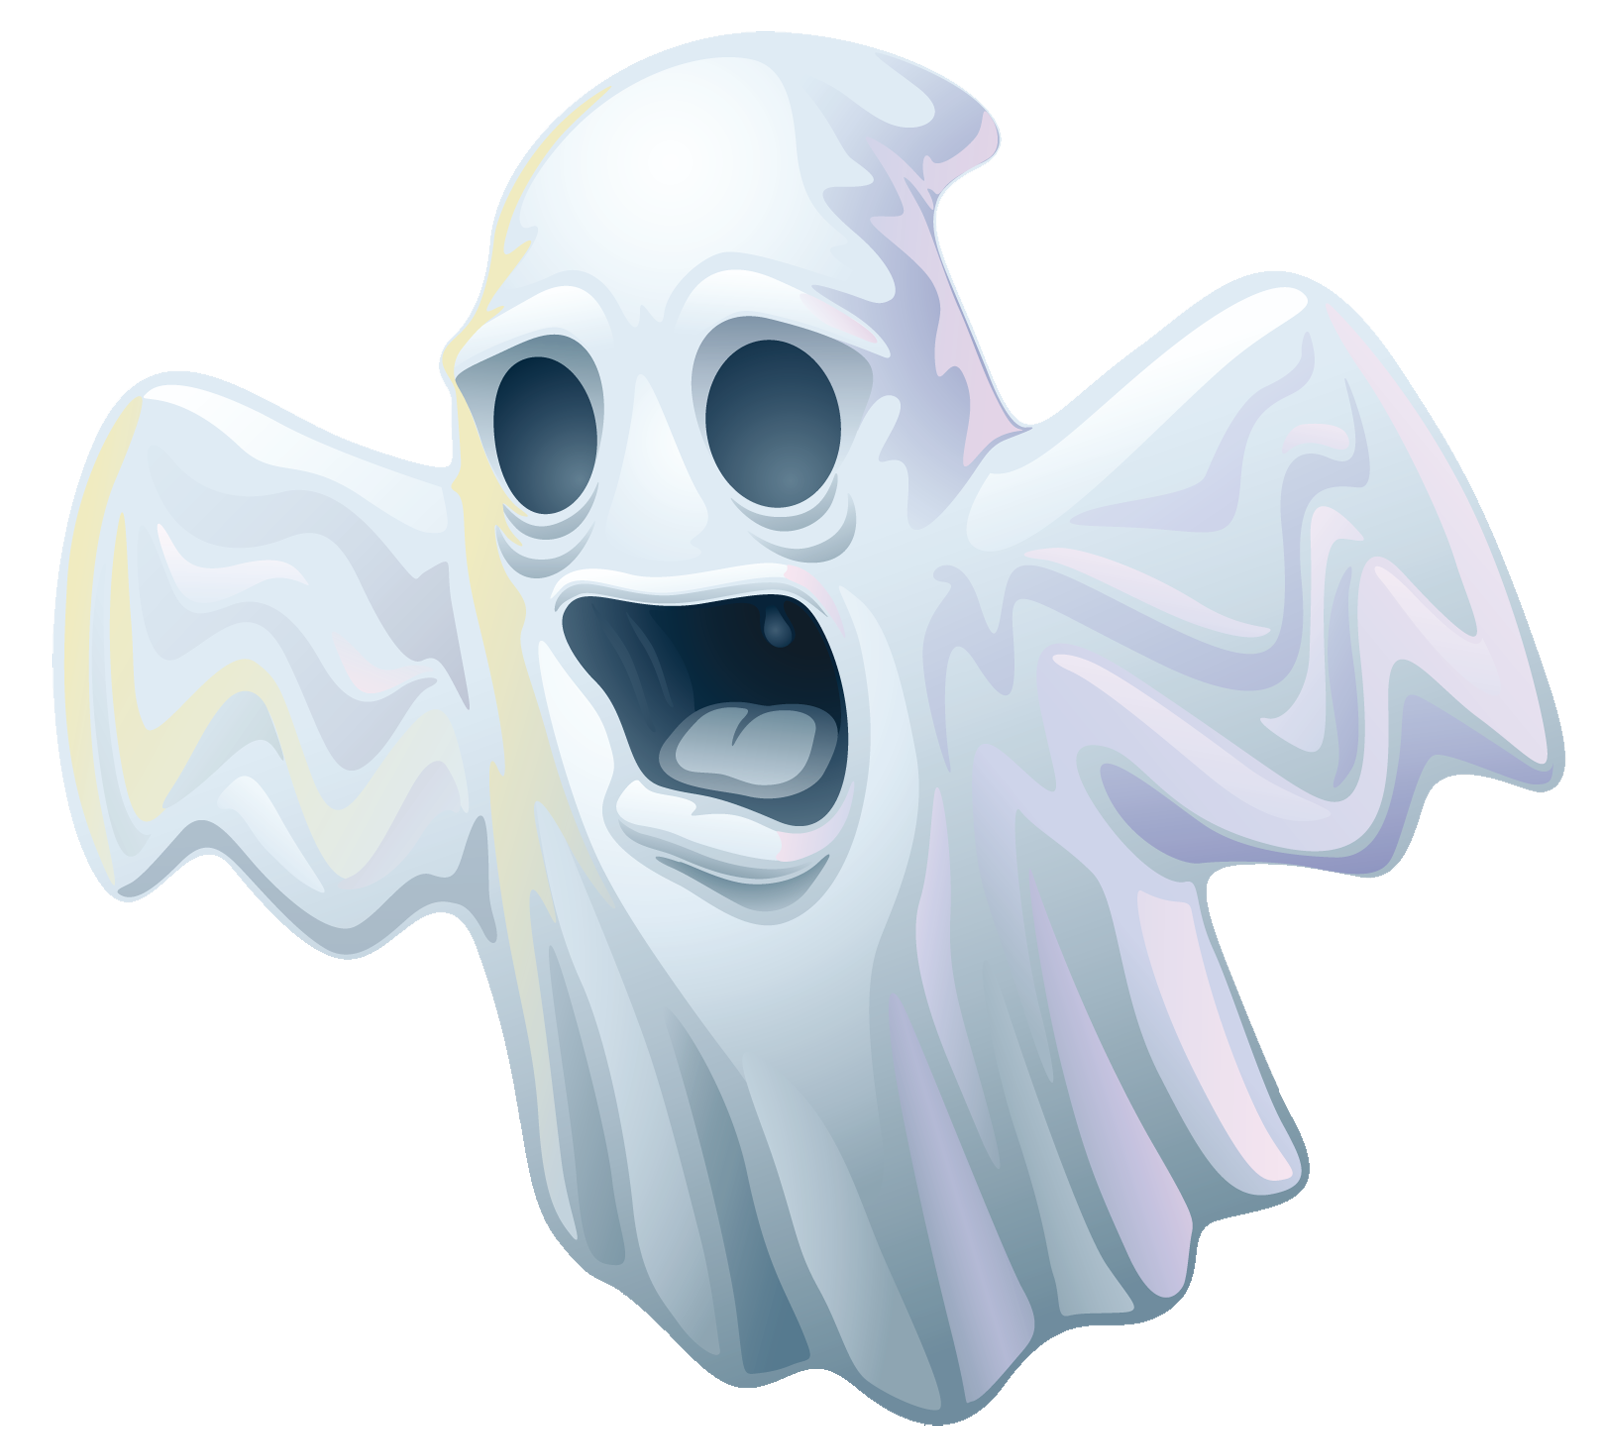 Clipart ghosts halloween png clip art free download Creepy Halloween Ghost PNG Clipart   Gallery Yopriceville - High ... clip art free download